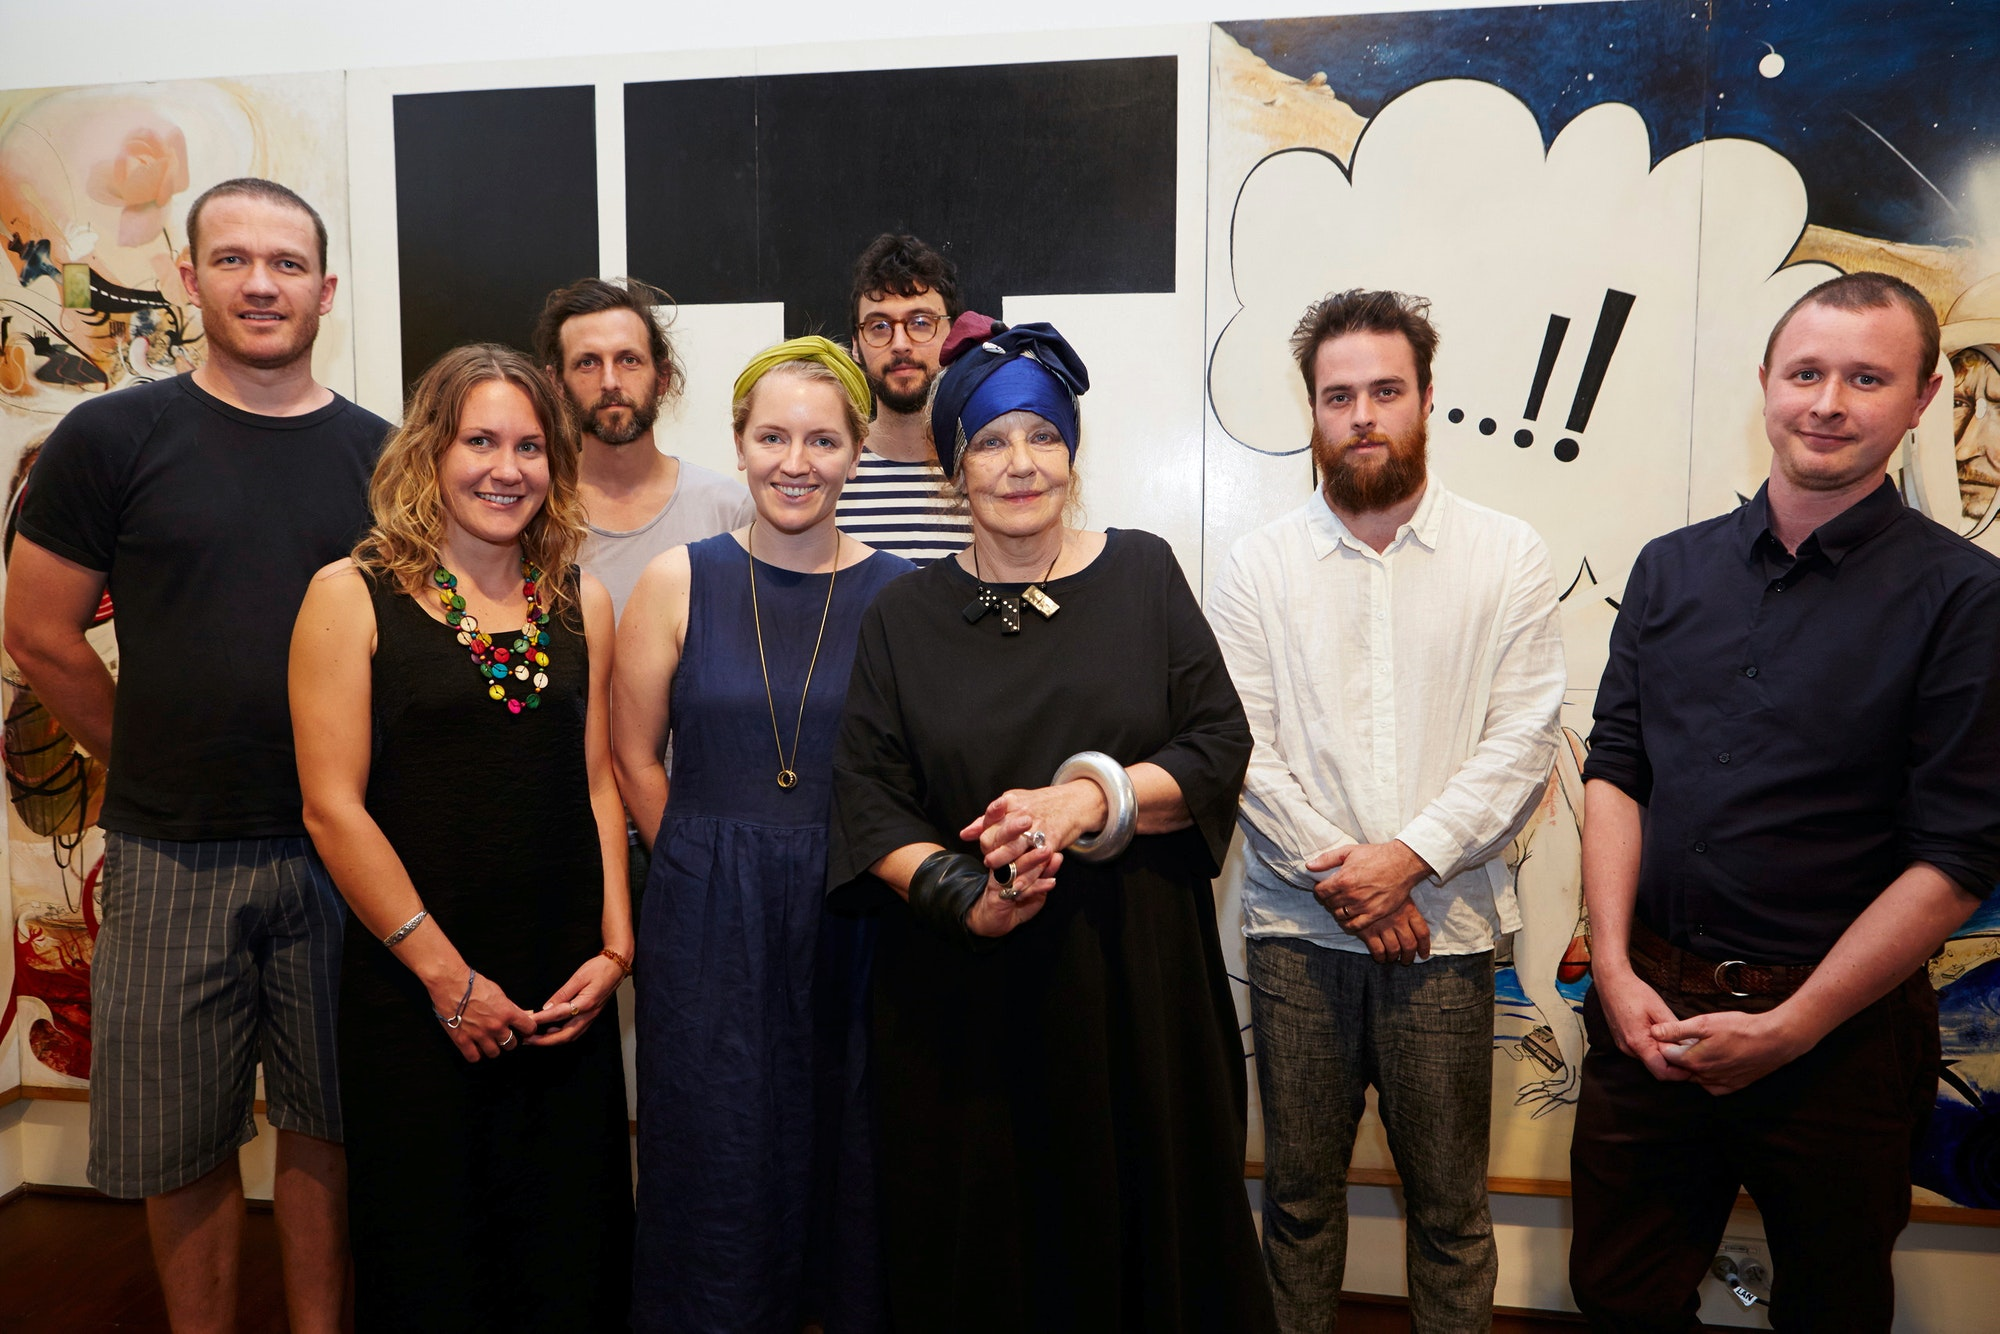 Previous winners of the Brett Whiteley Travelling Art Scholarship with Wendy Whiteley (left to right): Alan Jones, Nicole Kelly, Nathan Hawkes, Becky Gibson, Belem Lett, Wendy Whiteley, James Drinkwater, Mitch Cairns